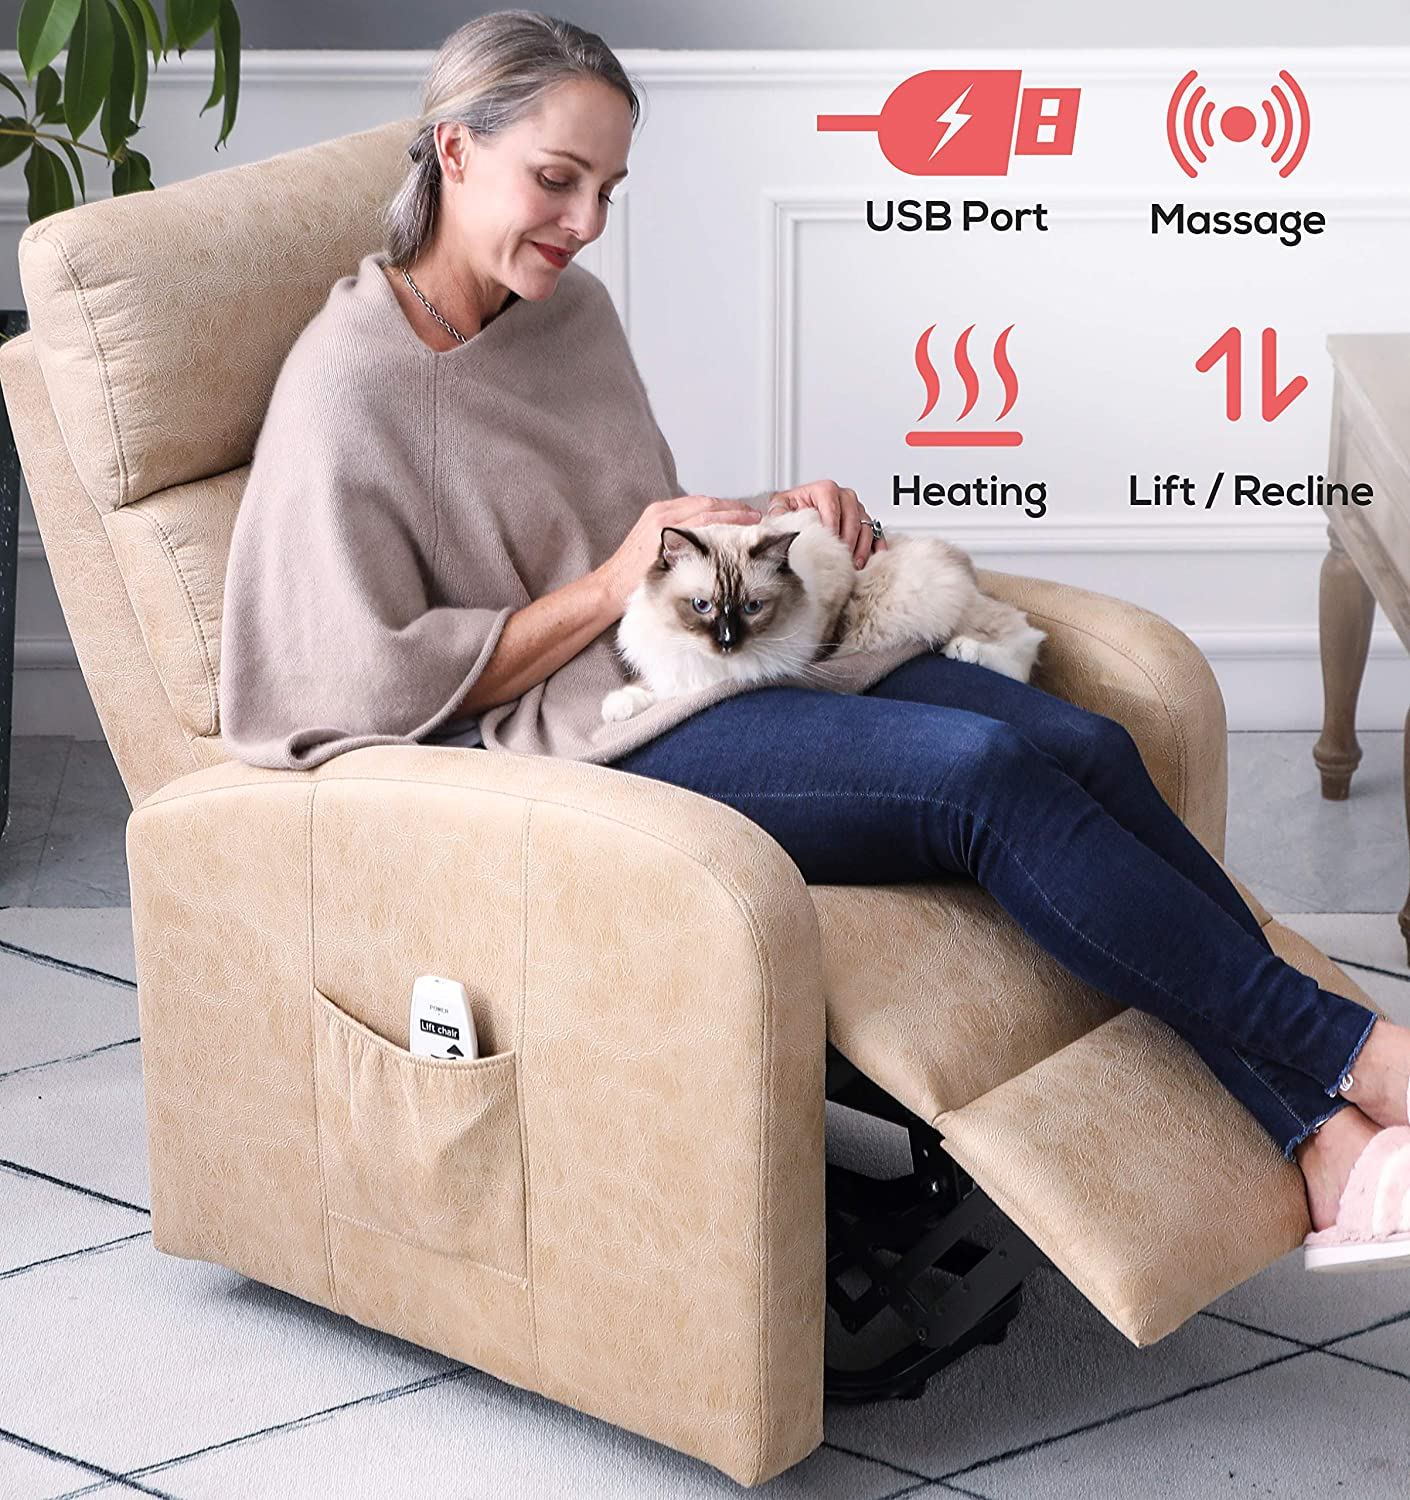 ERGOREAL Power Lift Recliner for Elderly Electric Lift Chairs with Heat and Massage Faux Leather Textured Suede Lift Chair USB Port and Side Pocket